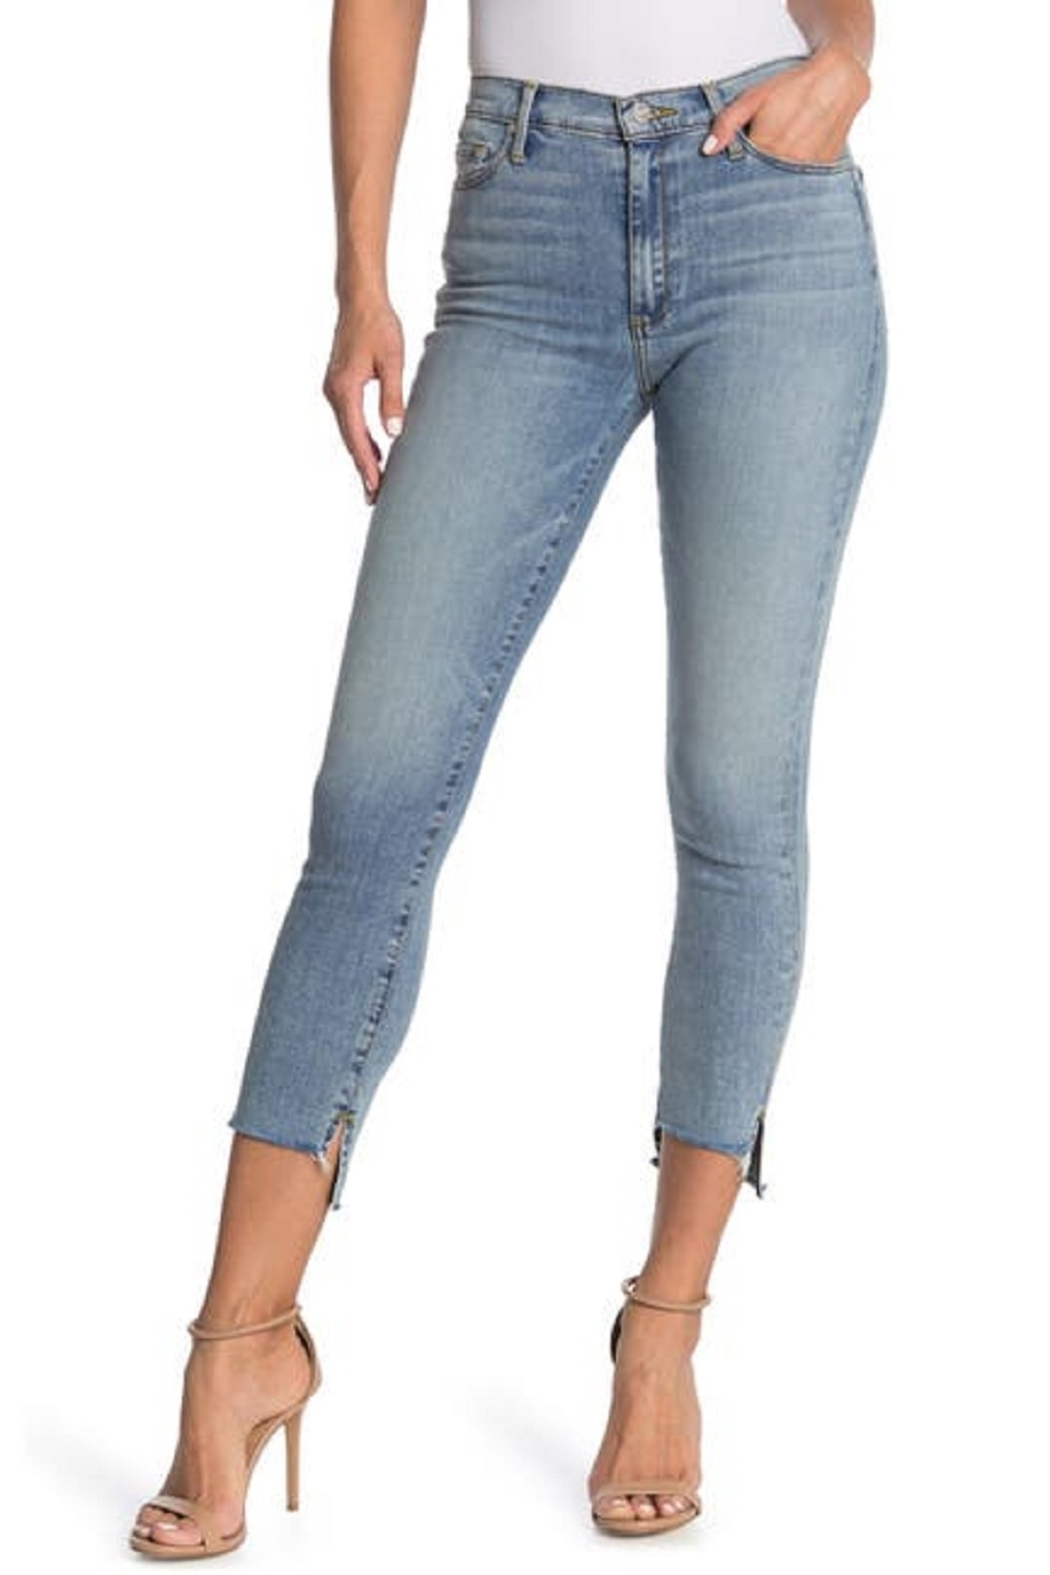 Black Orchid Denim Light Wash Step Hem Jeans - Main Image